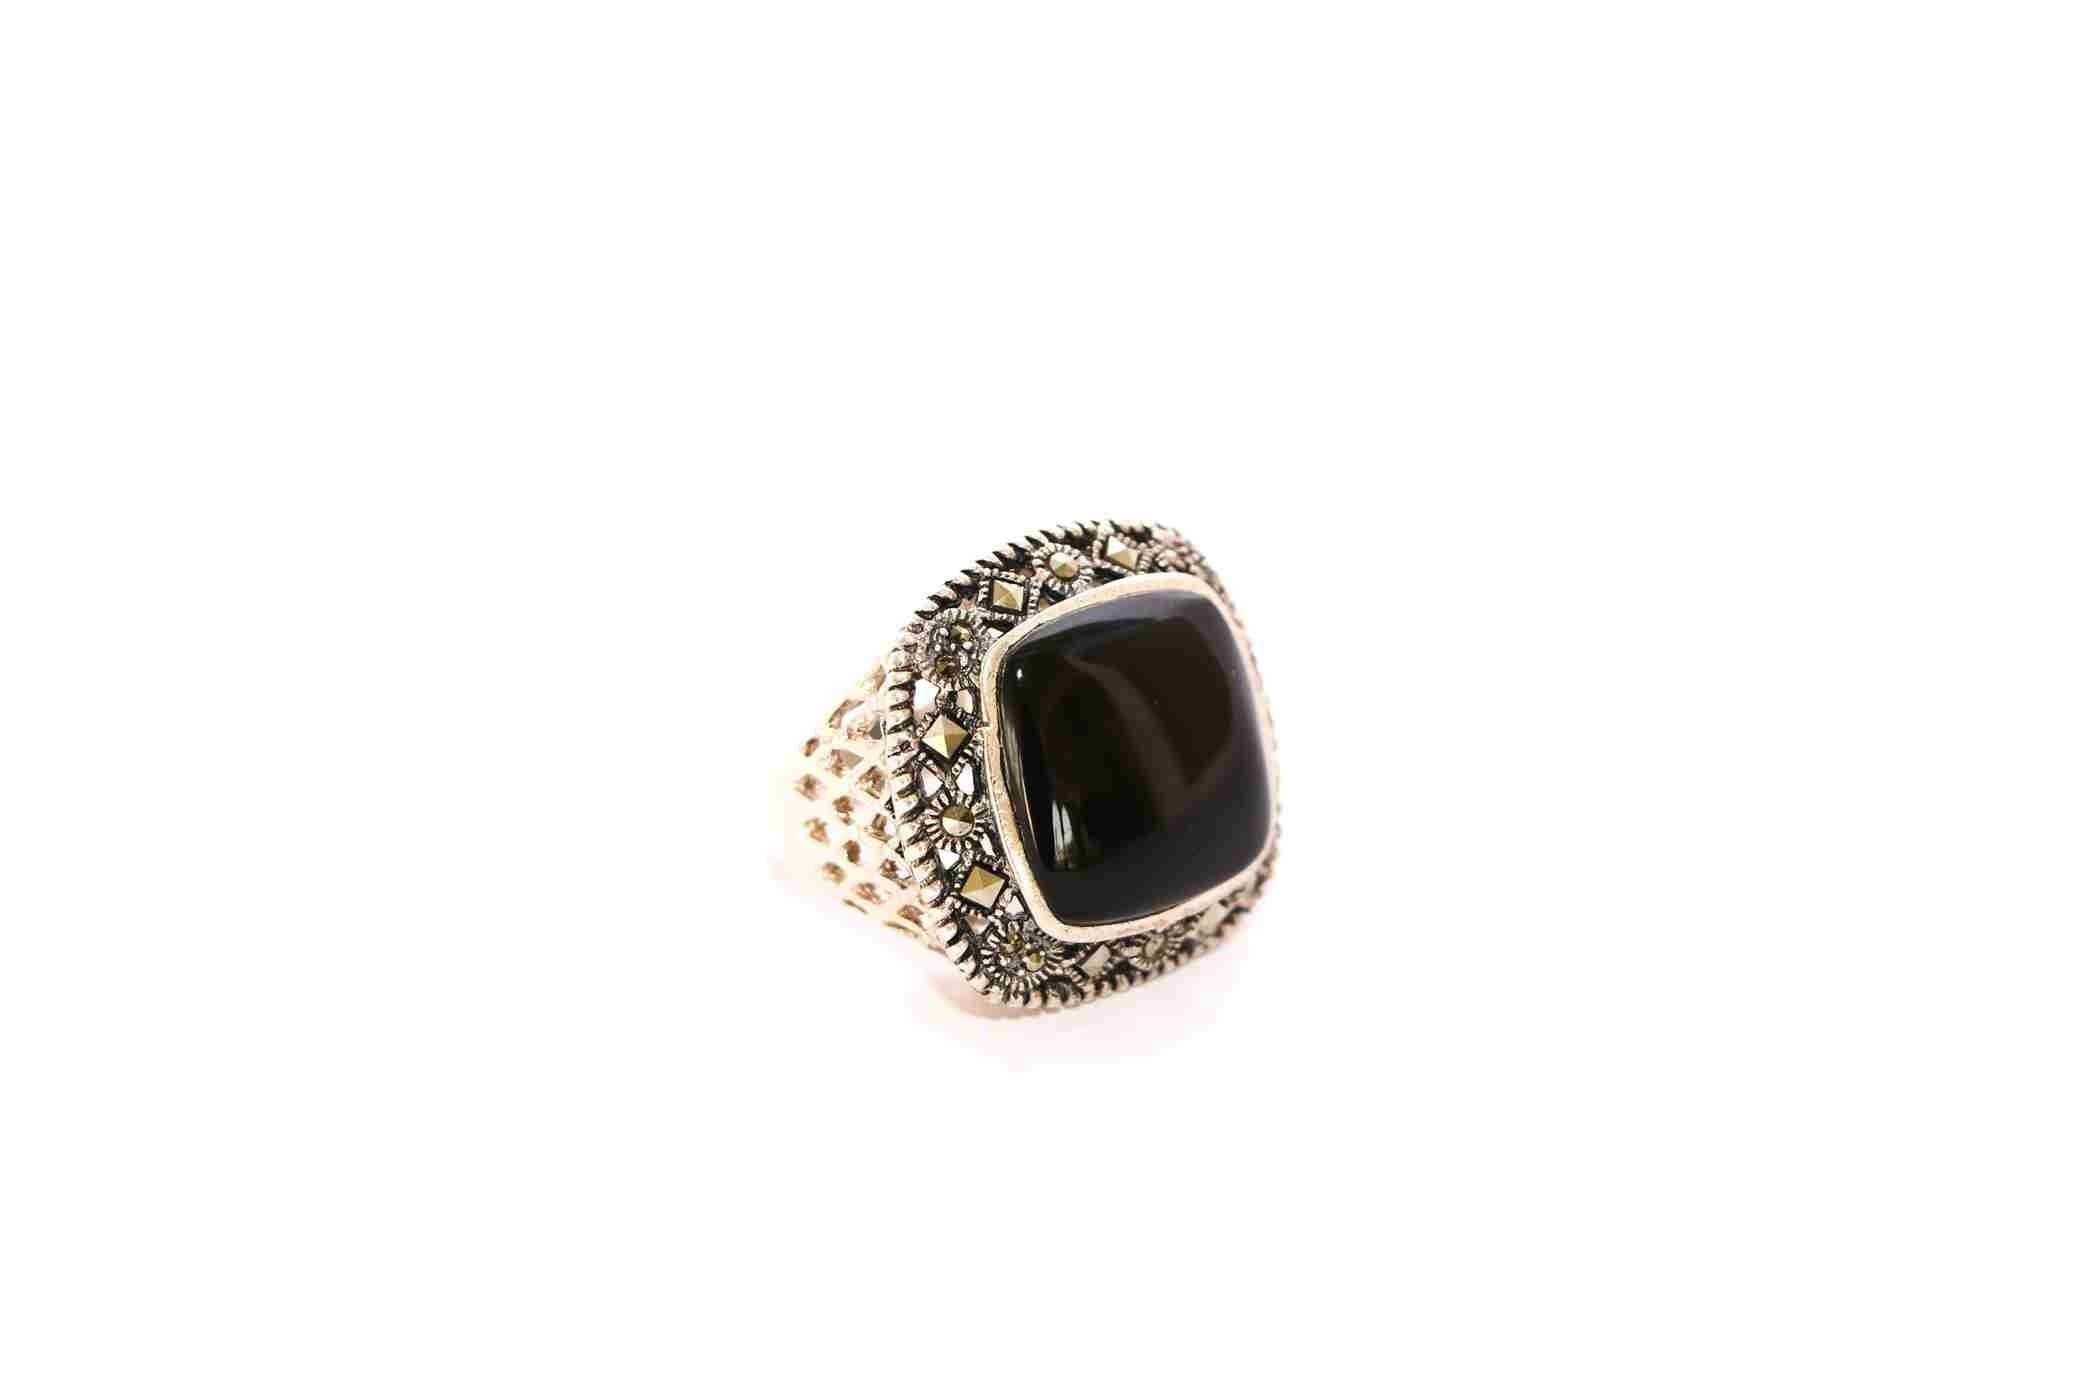 Black onyx with marcasite 1